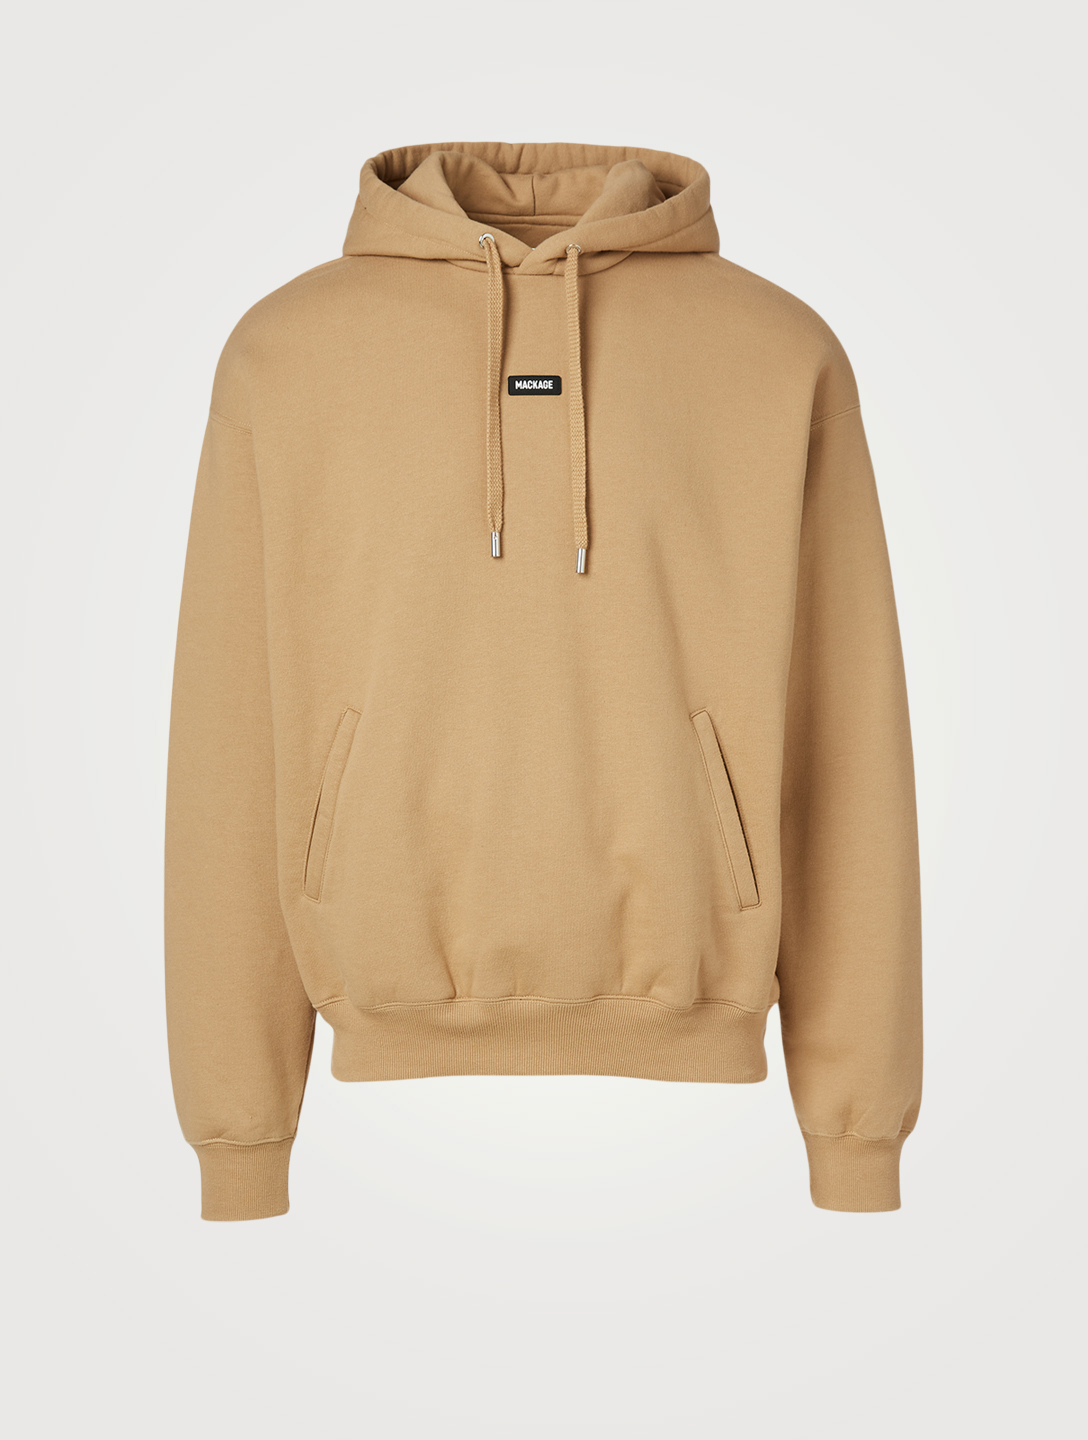 MACKAGE Phoenix Fleece Jersey Hoodie Men's Beige